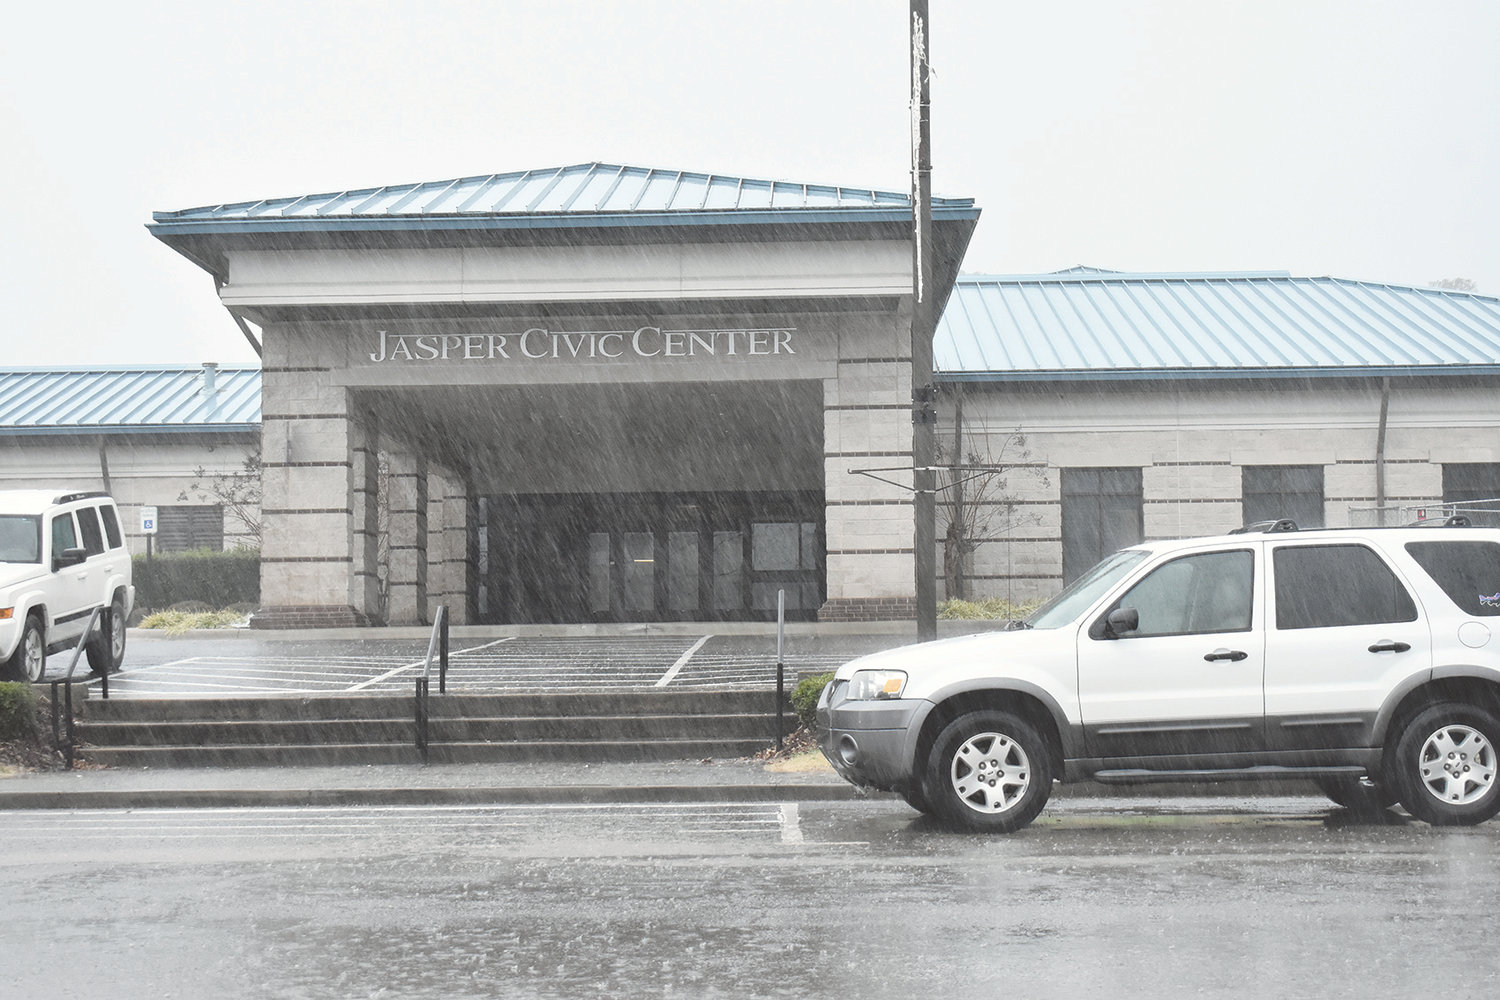 Heavy rains had no noticeable impact on the Jasper Civic Center parking lot on Monday, a marked change from the past.